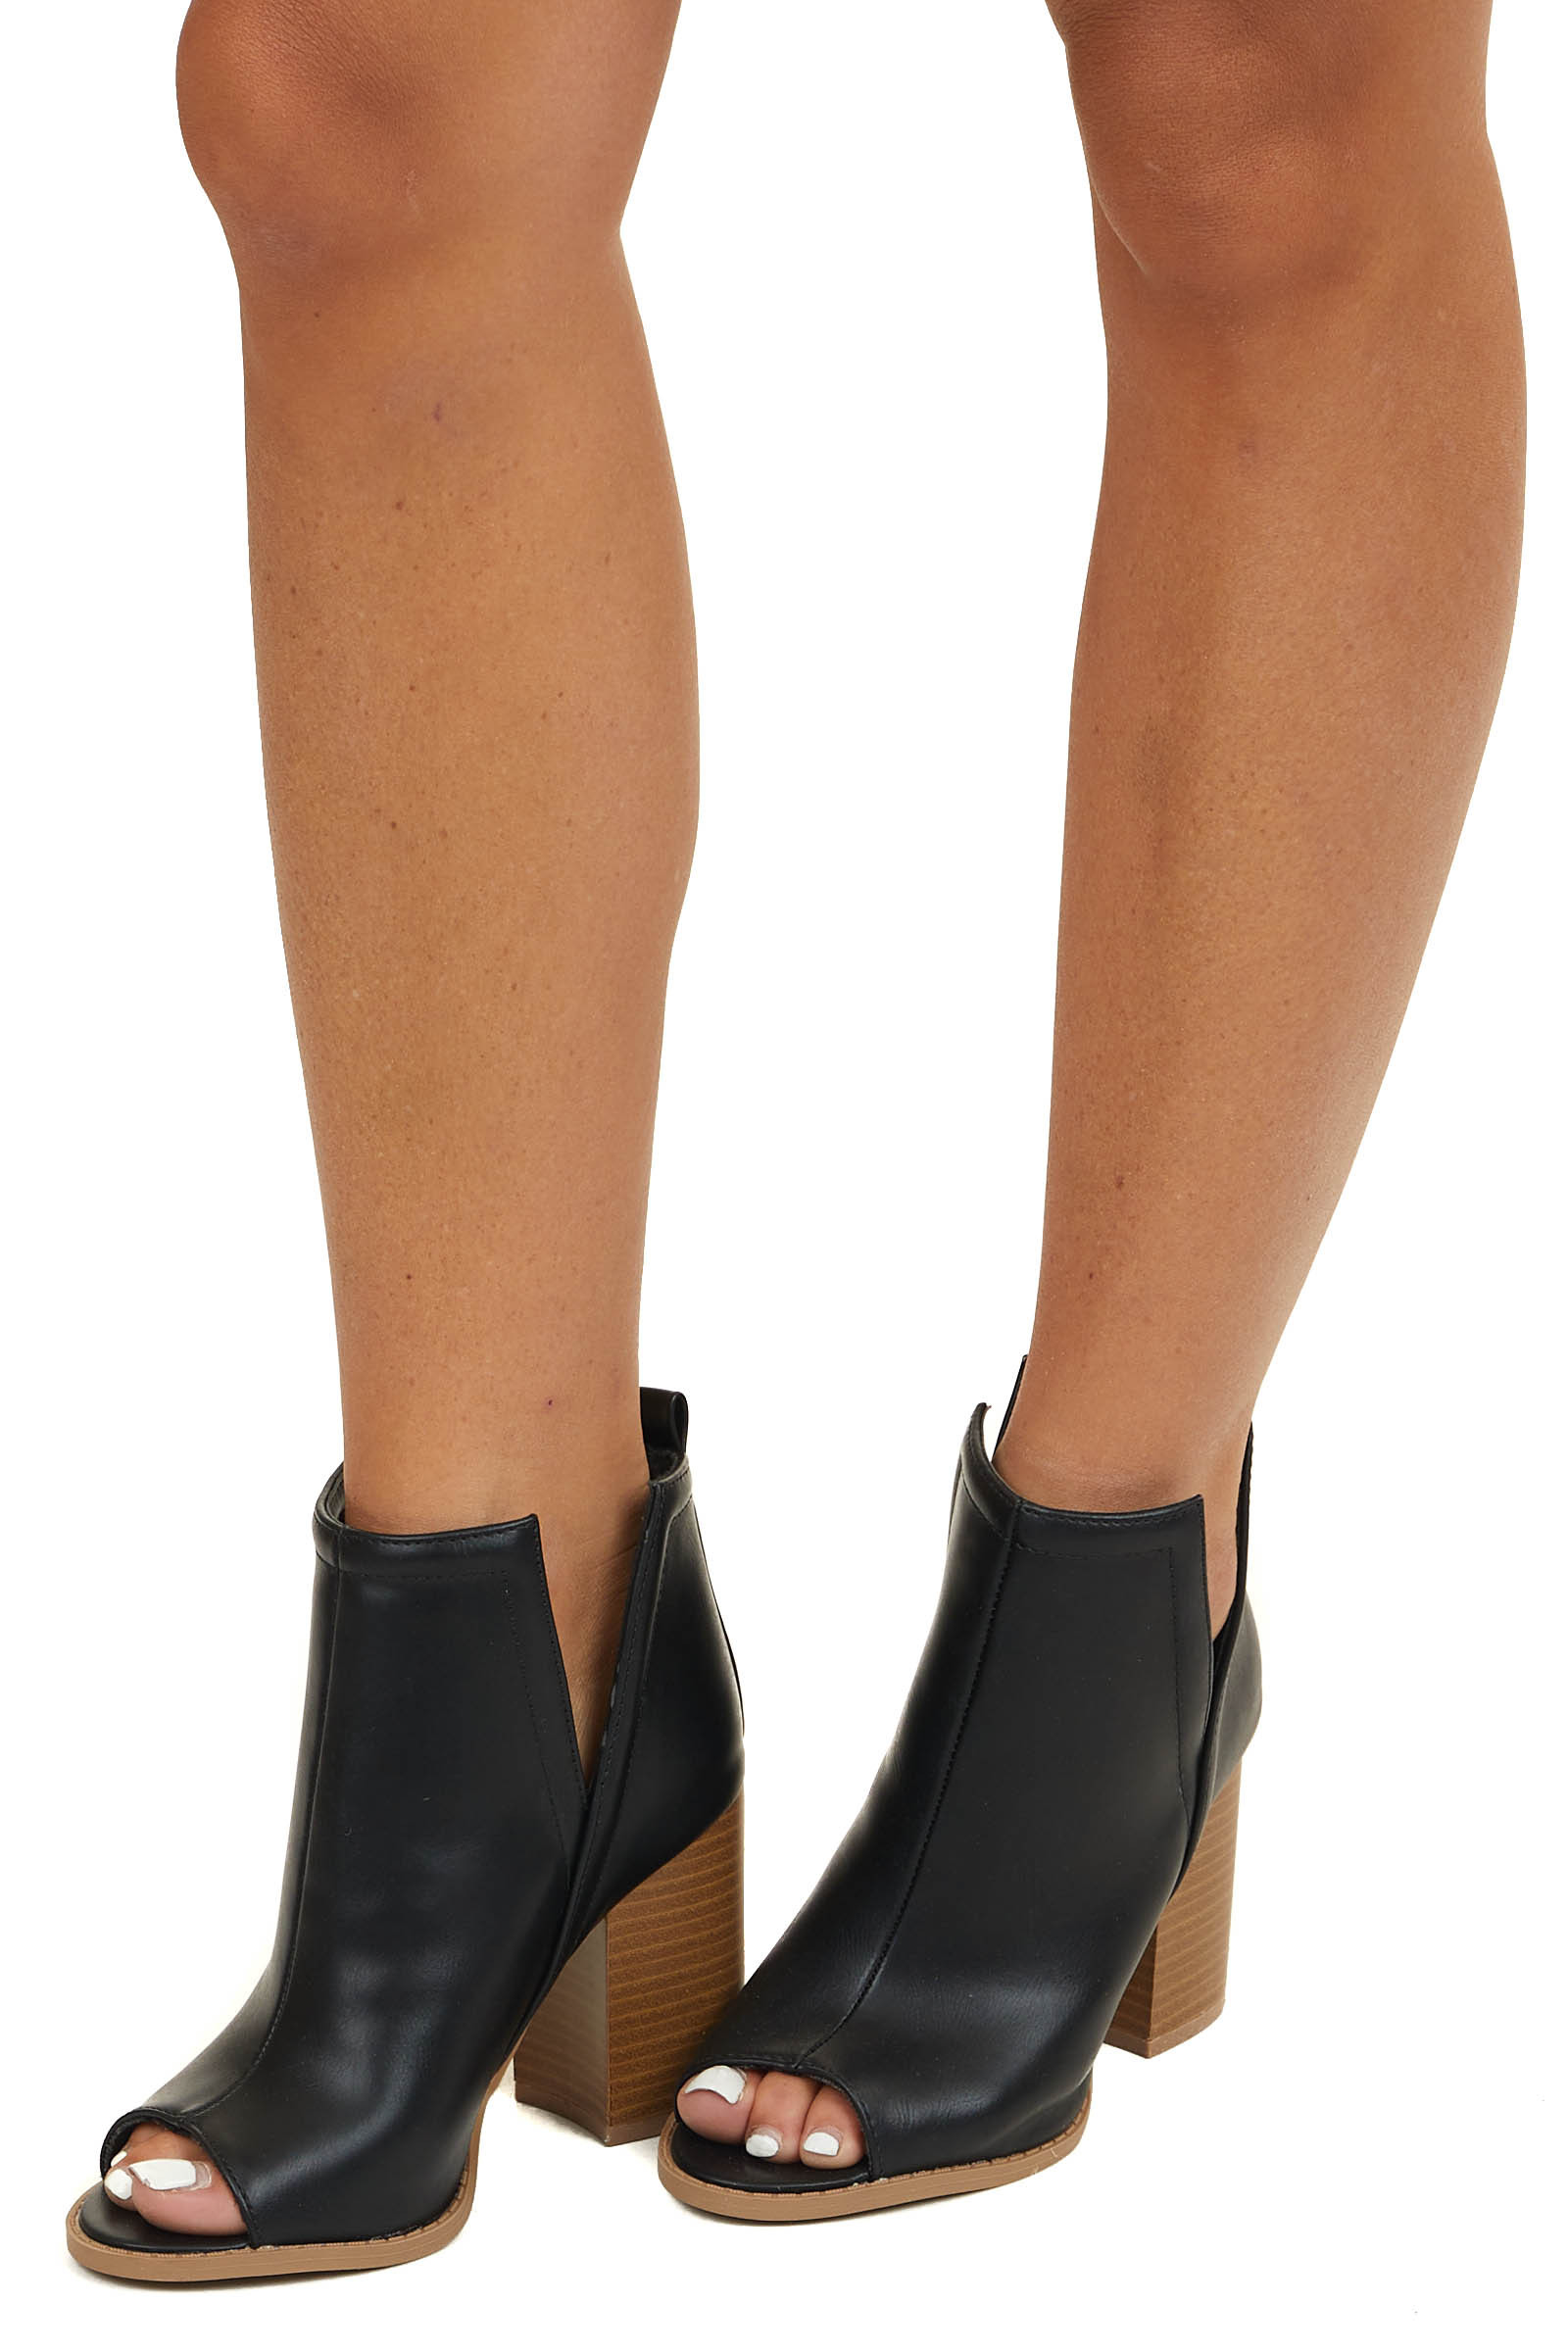 Black Faux Leather Open Toed Heels with Side Slits